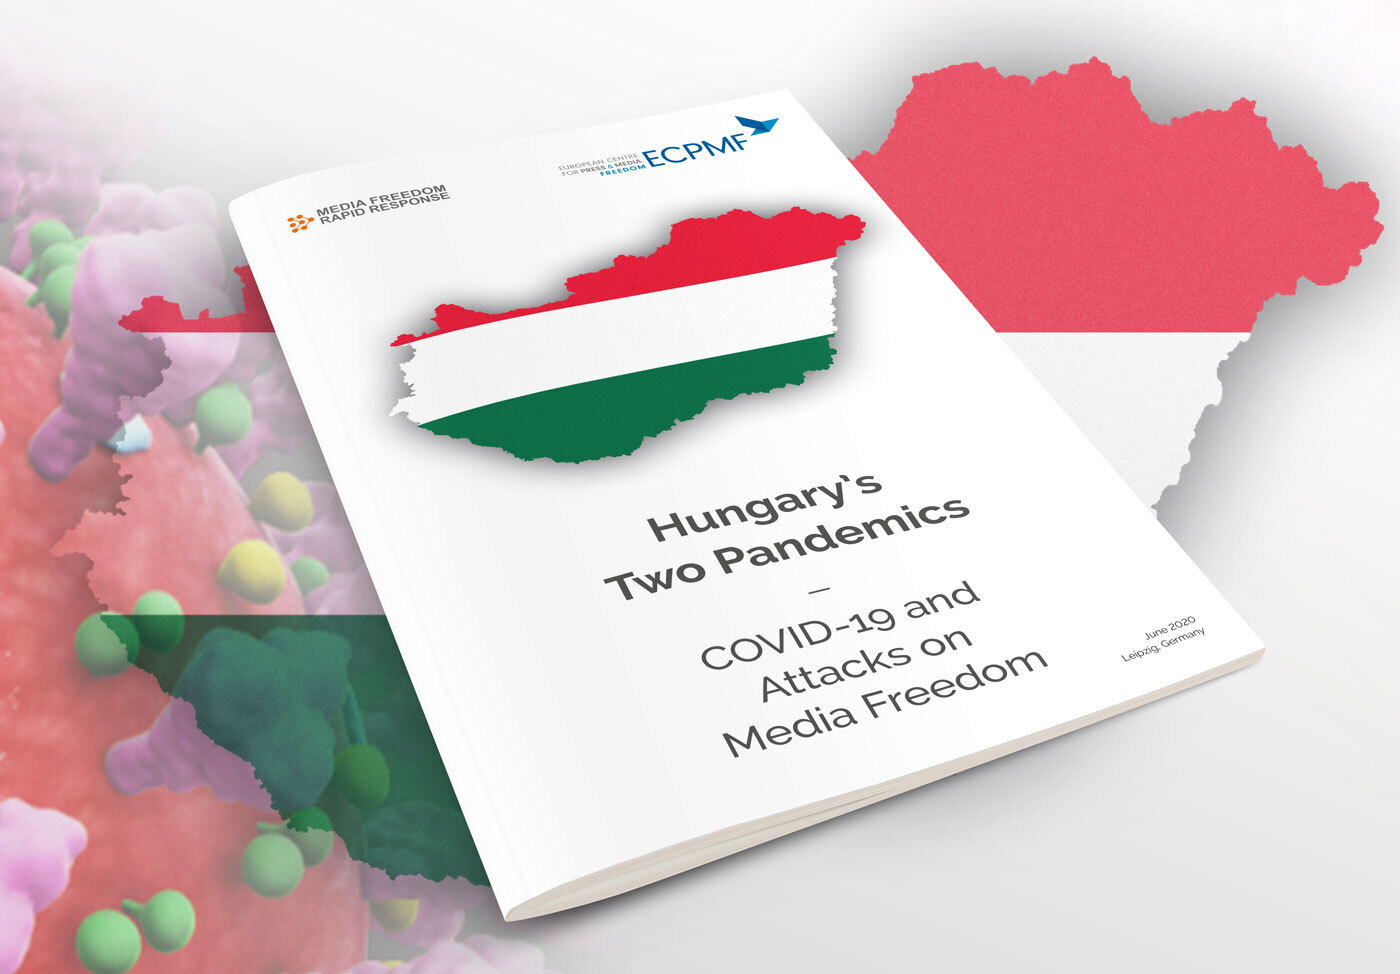 Legal opinion on hungary's state of danger 2020